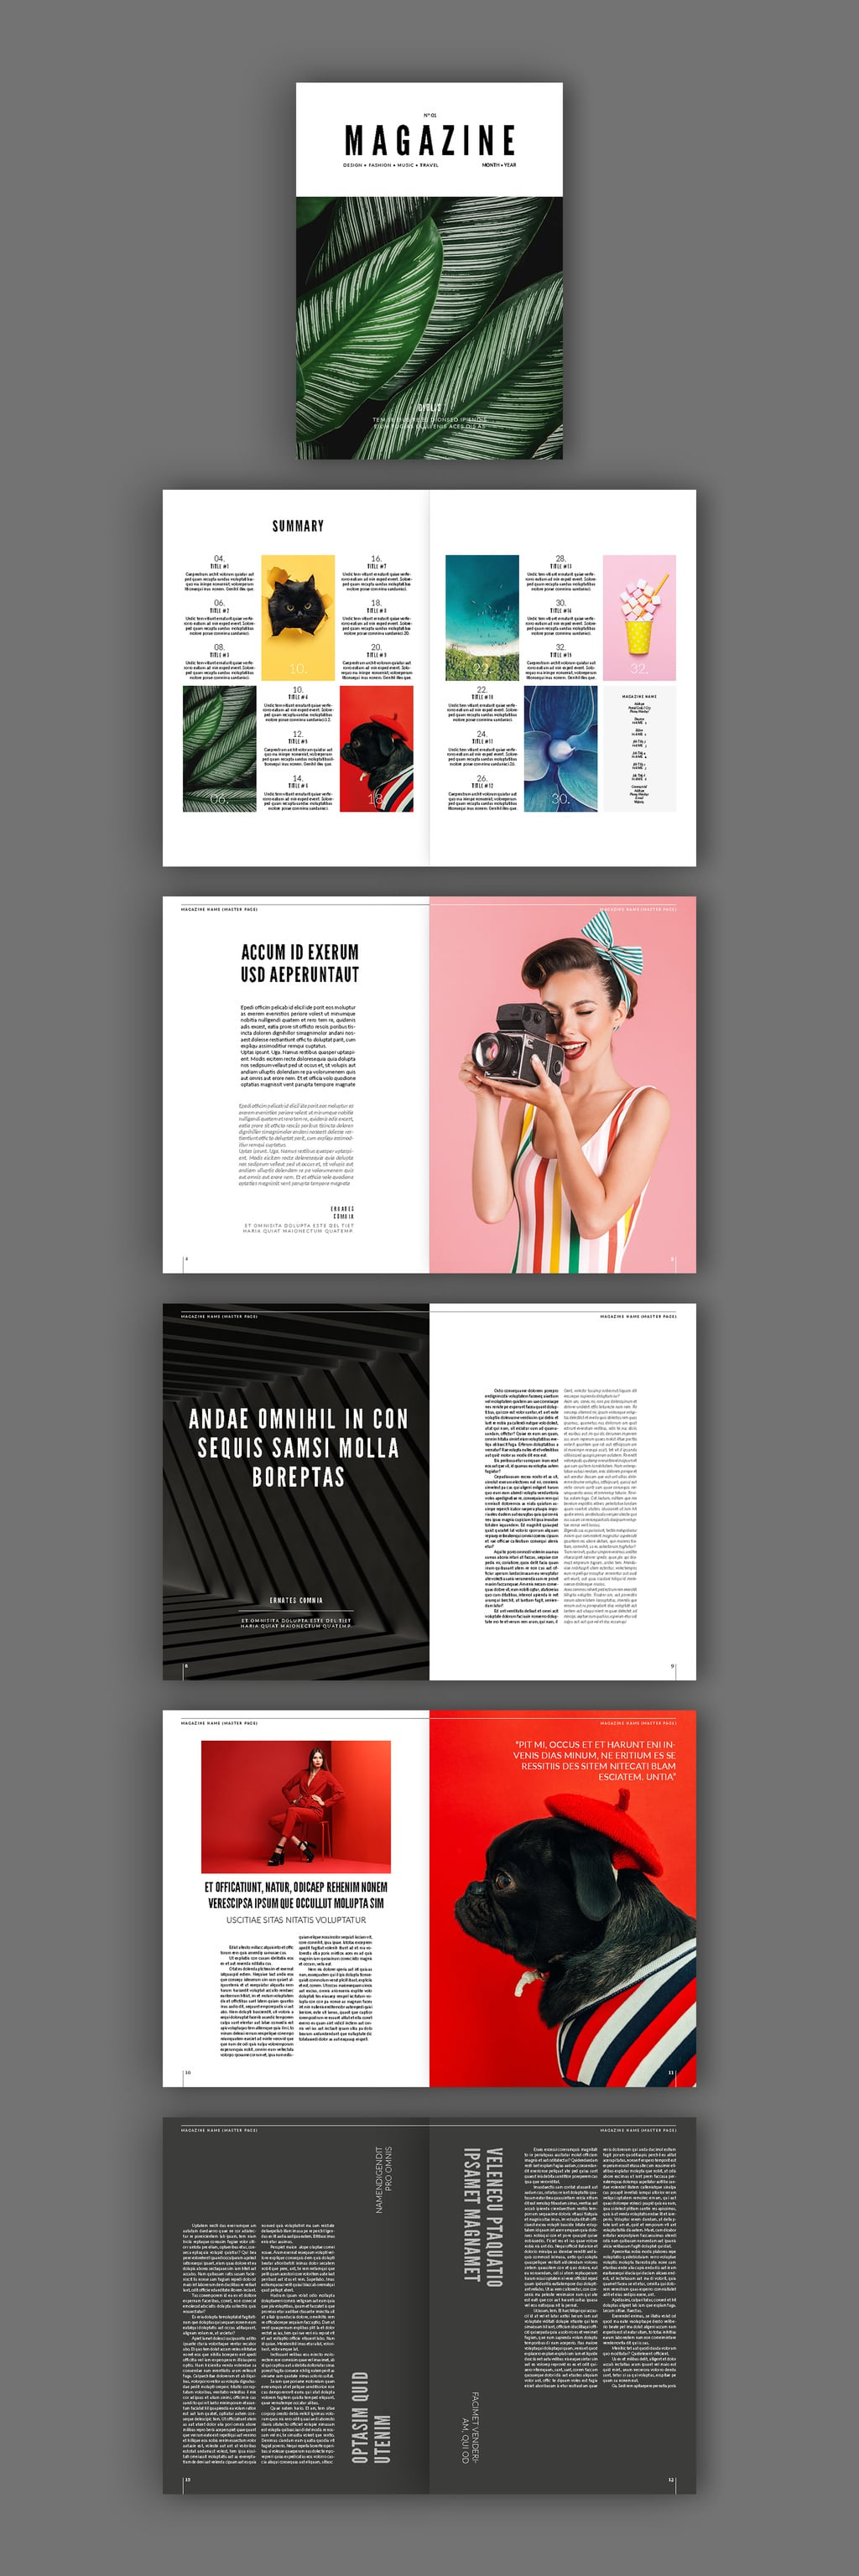 75 Fresh Indesign Templates And Where To Find More